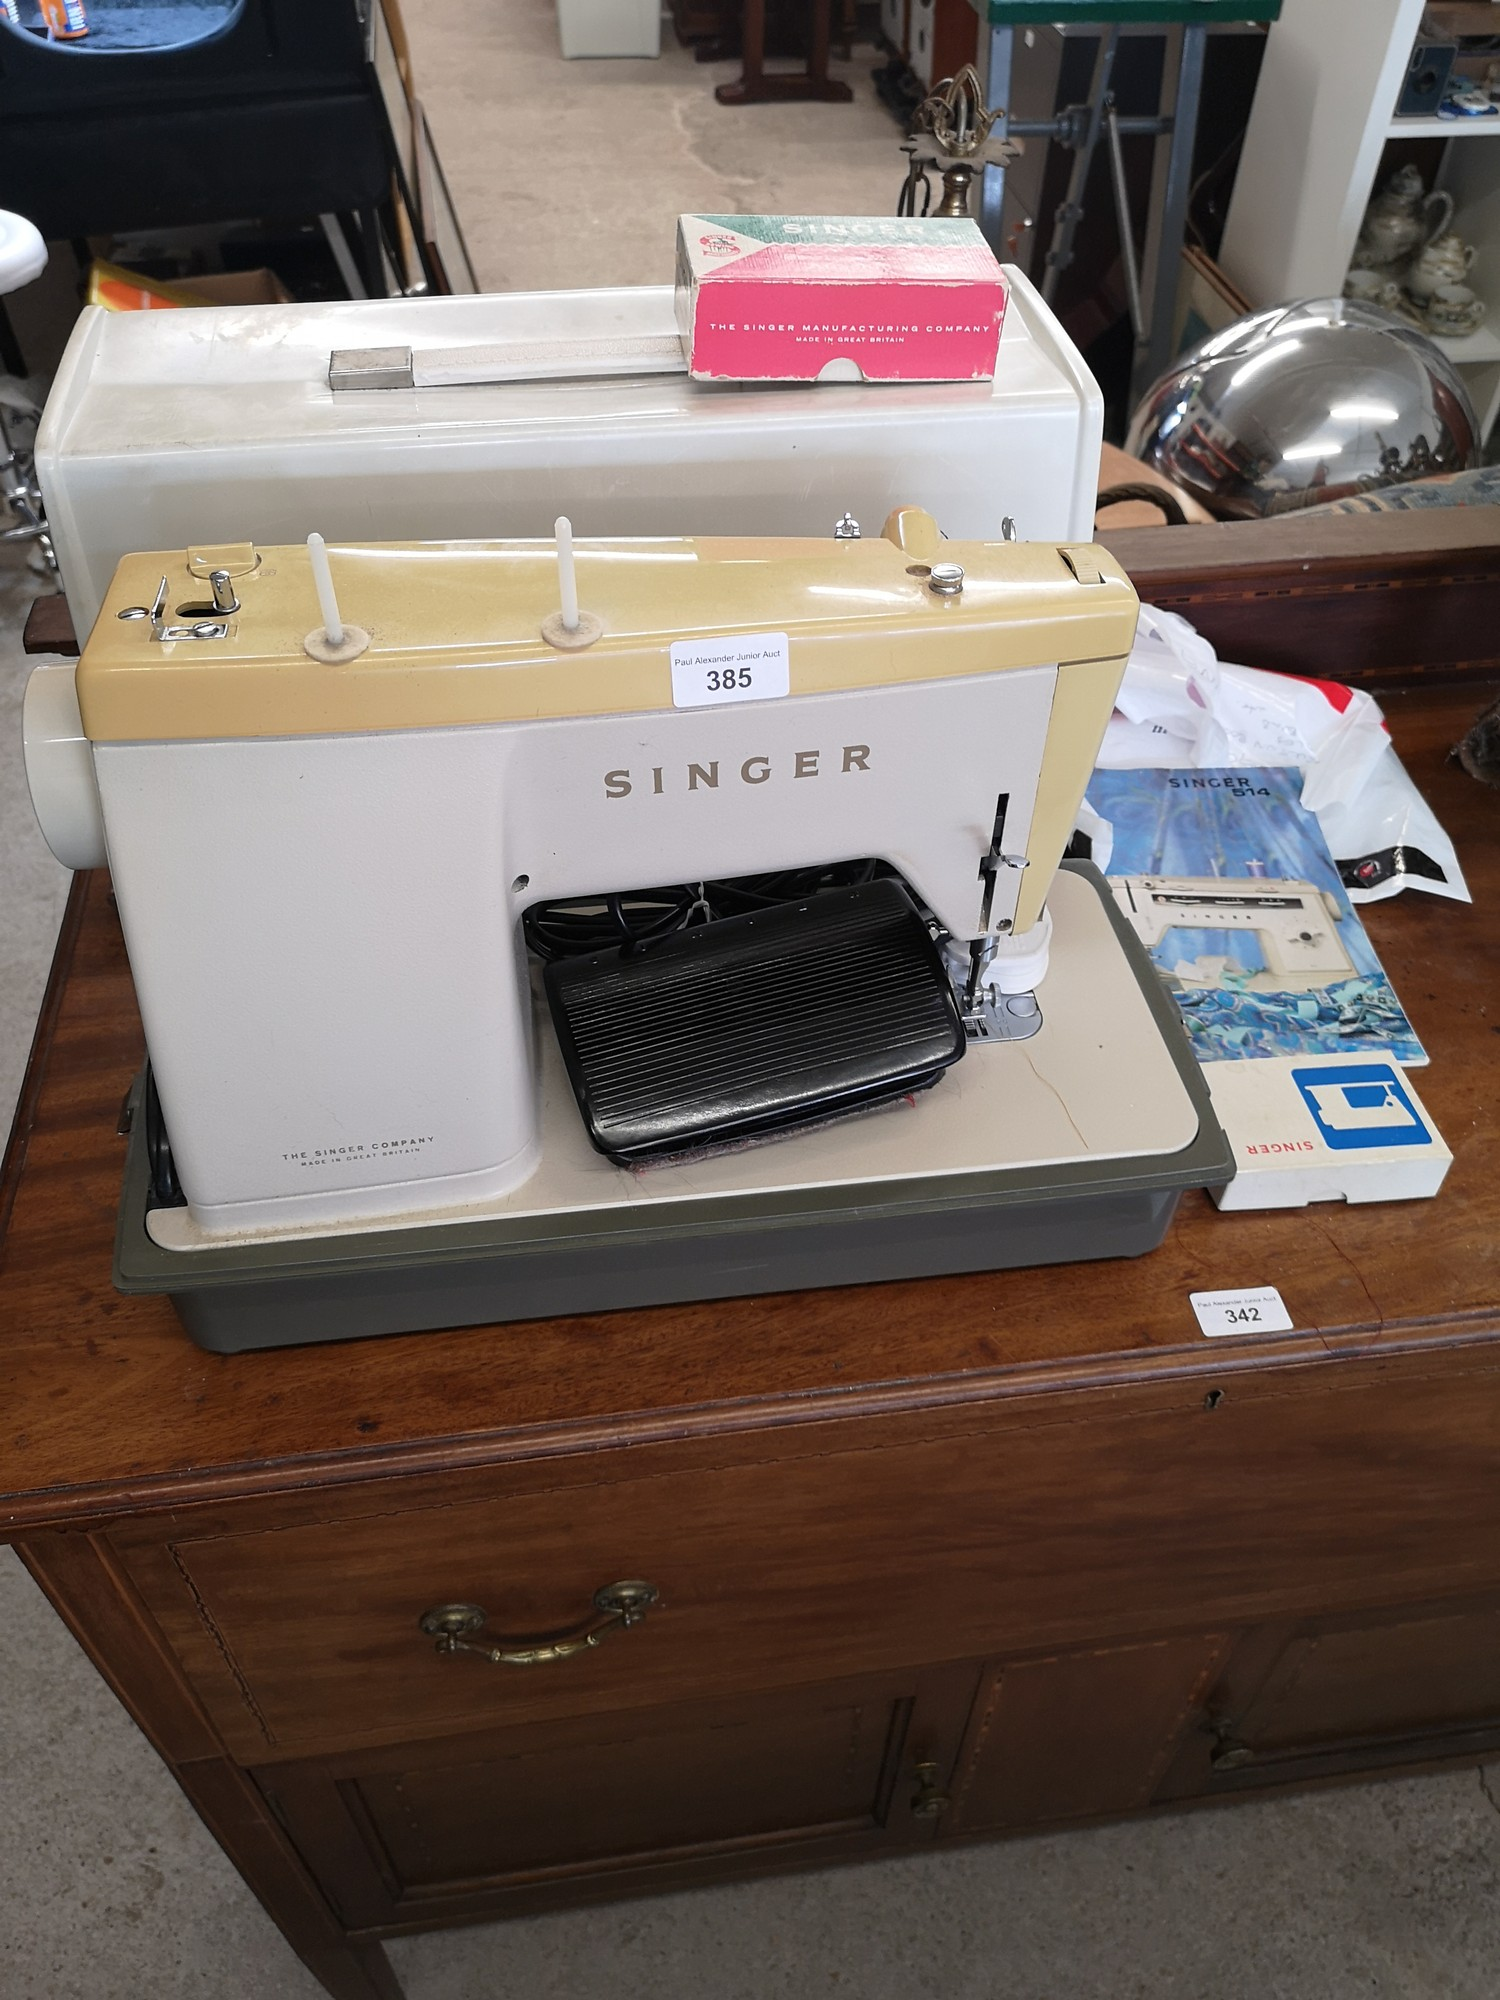 Singer modern sewing machine with accessories.